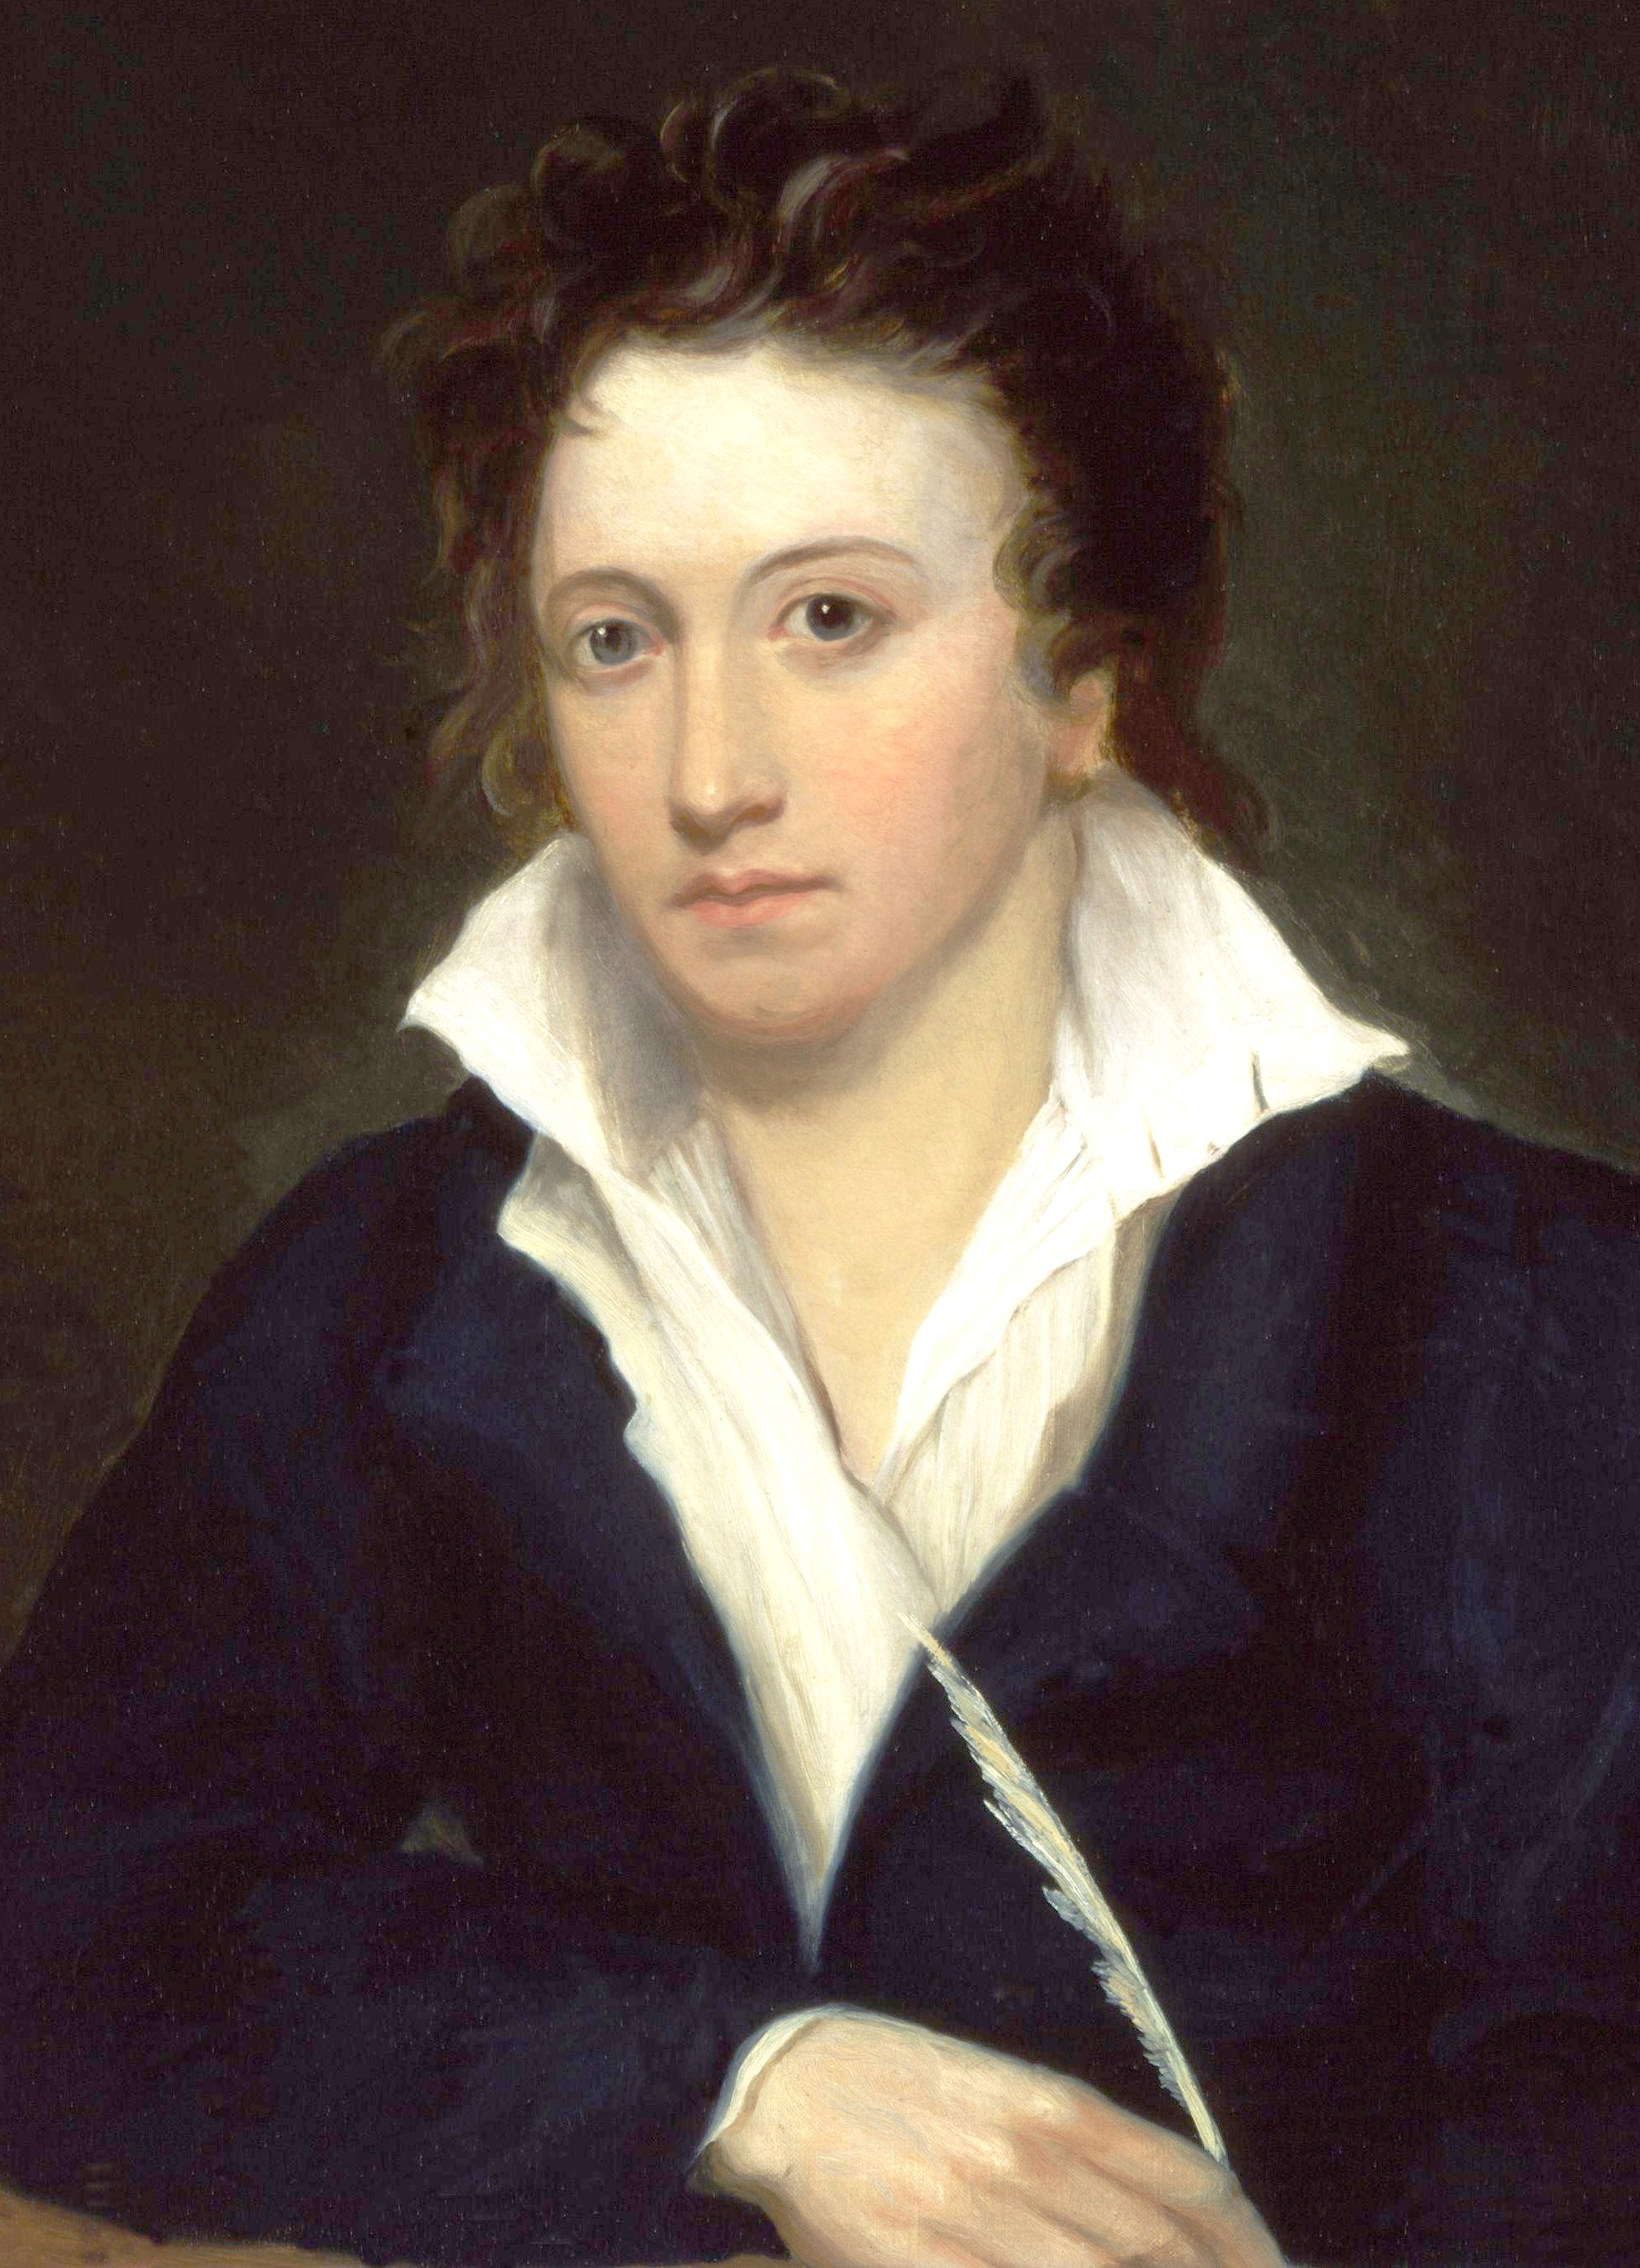 Catolague of pretty bois Percy_Bysshe_Shelley_by_Alfred_Clint_crop